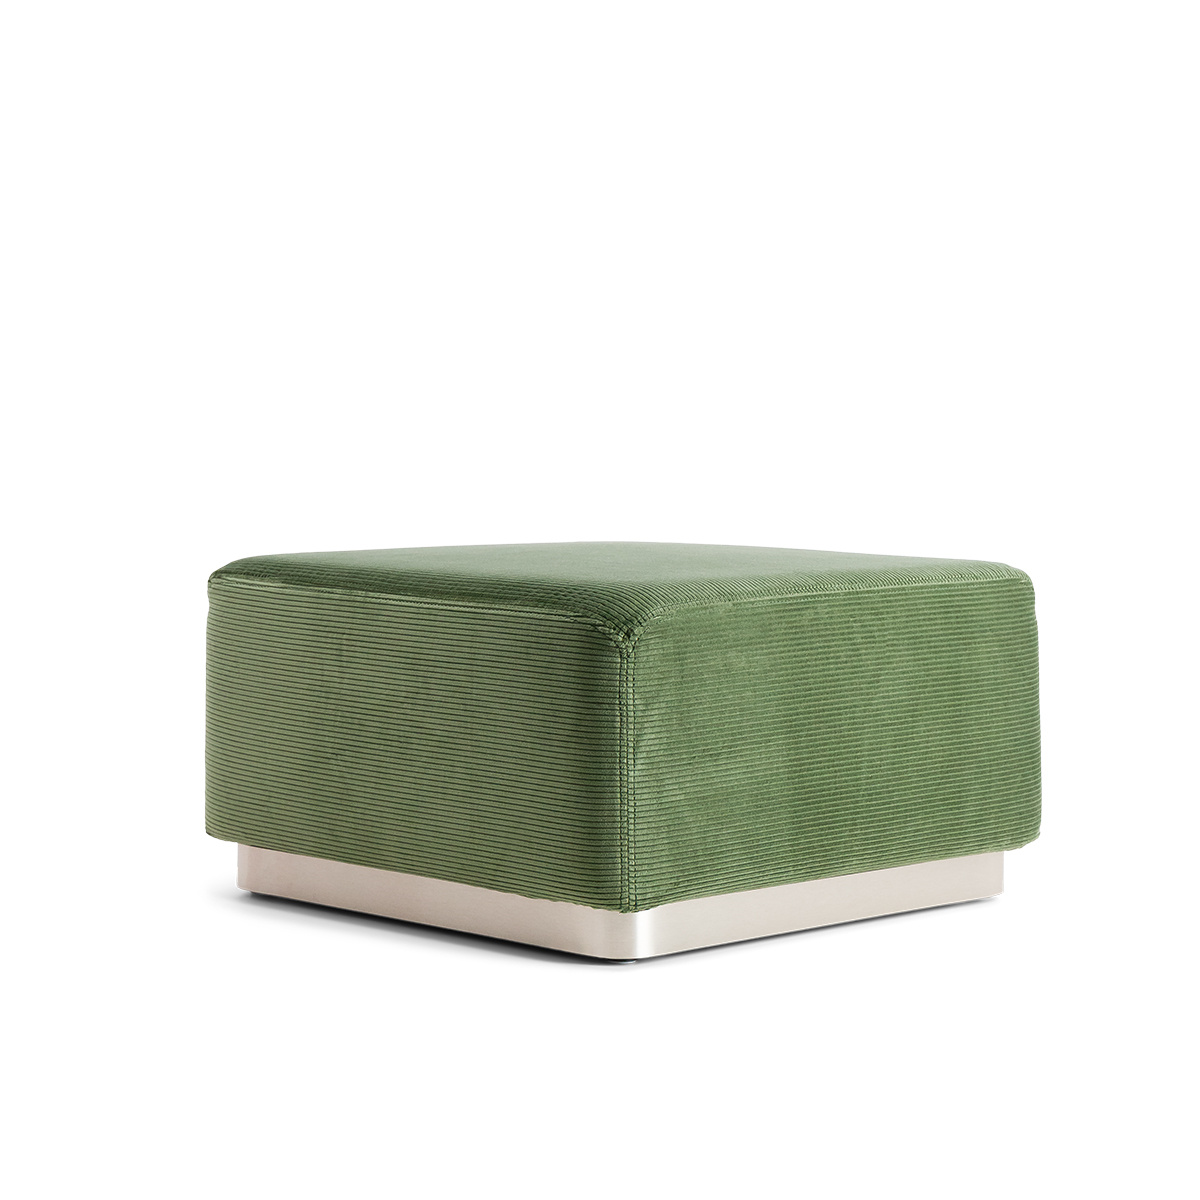 Rotondo Footstool in Almond Green Corduroy